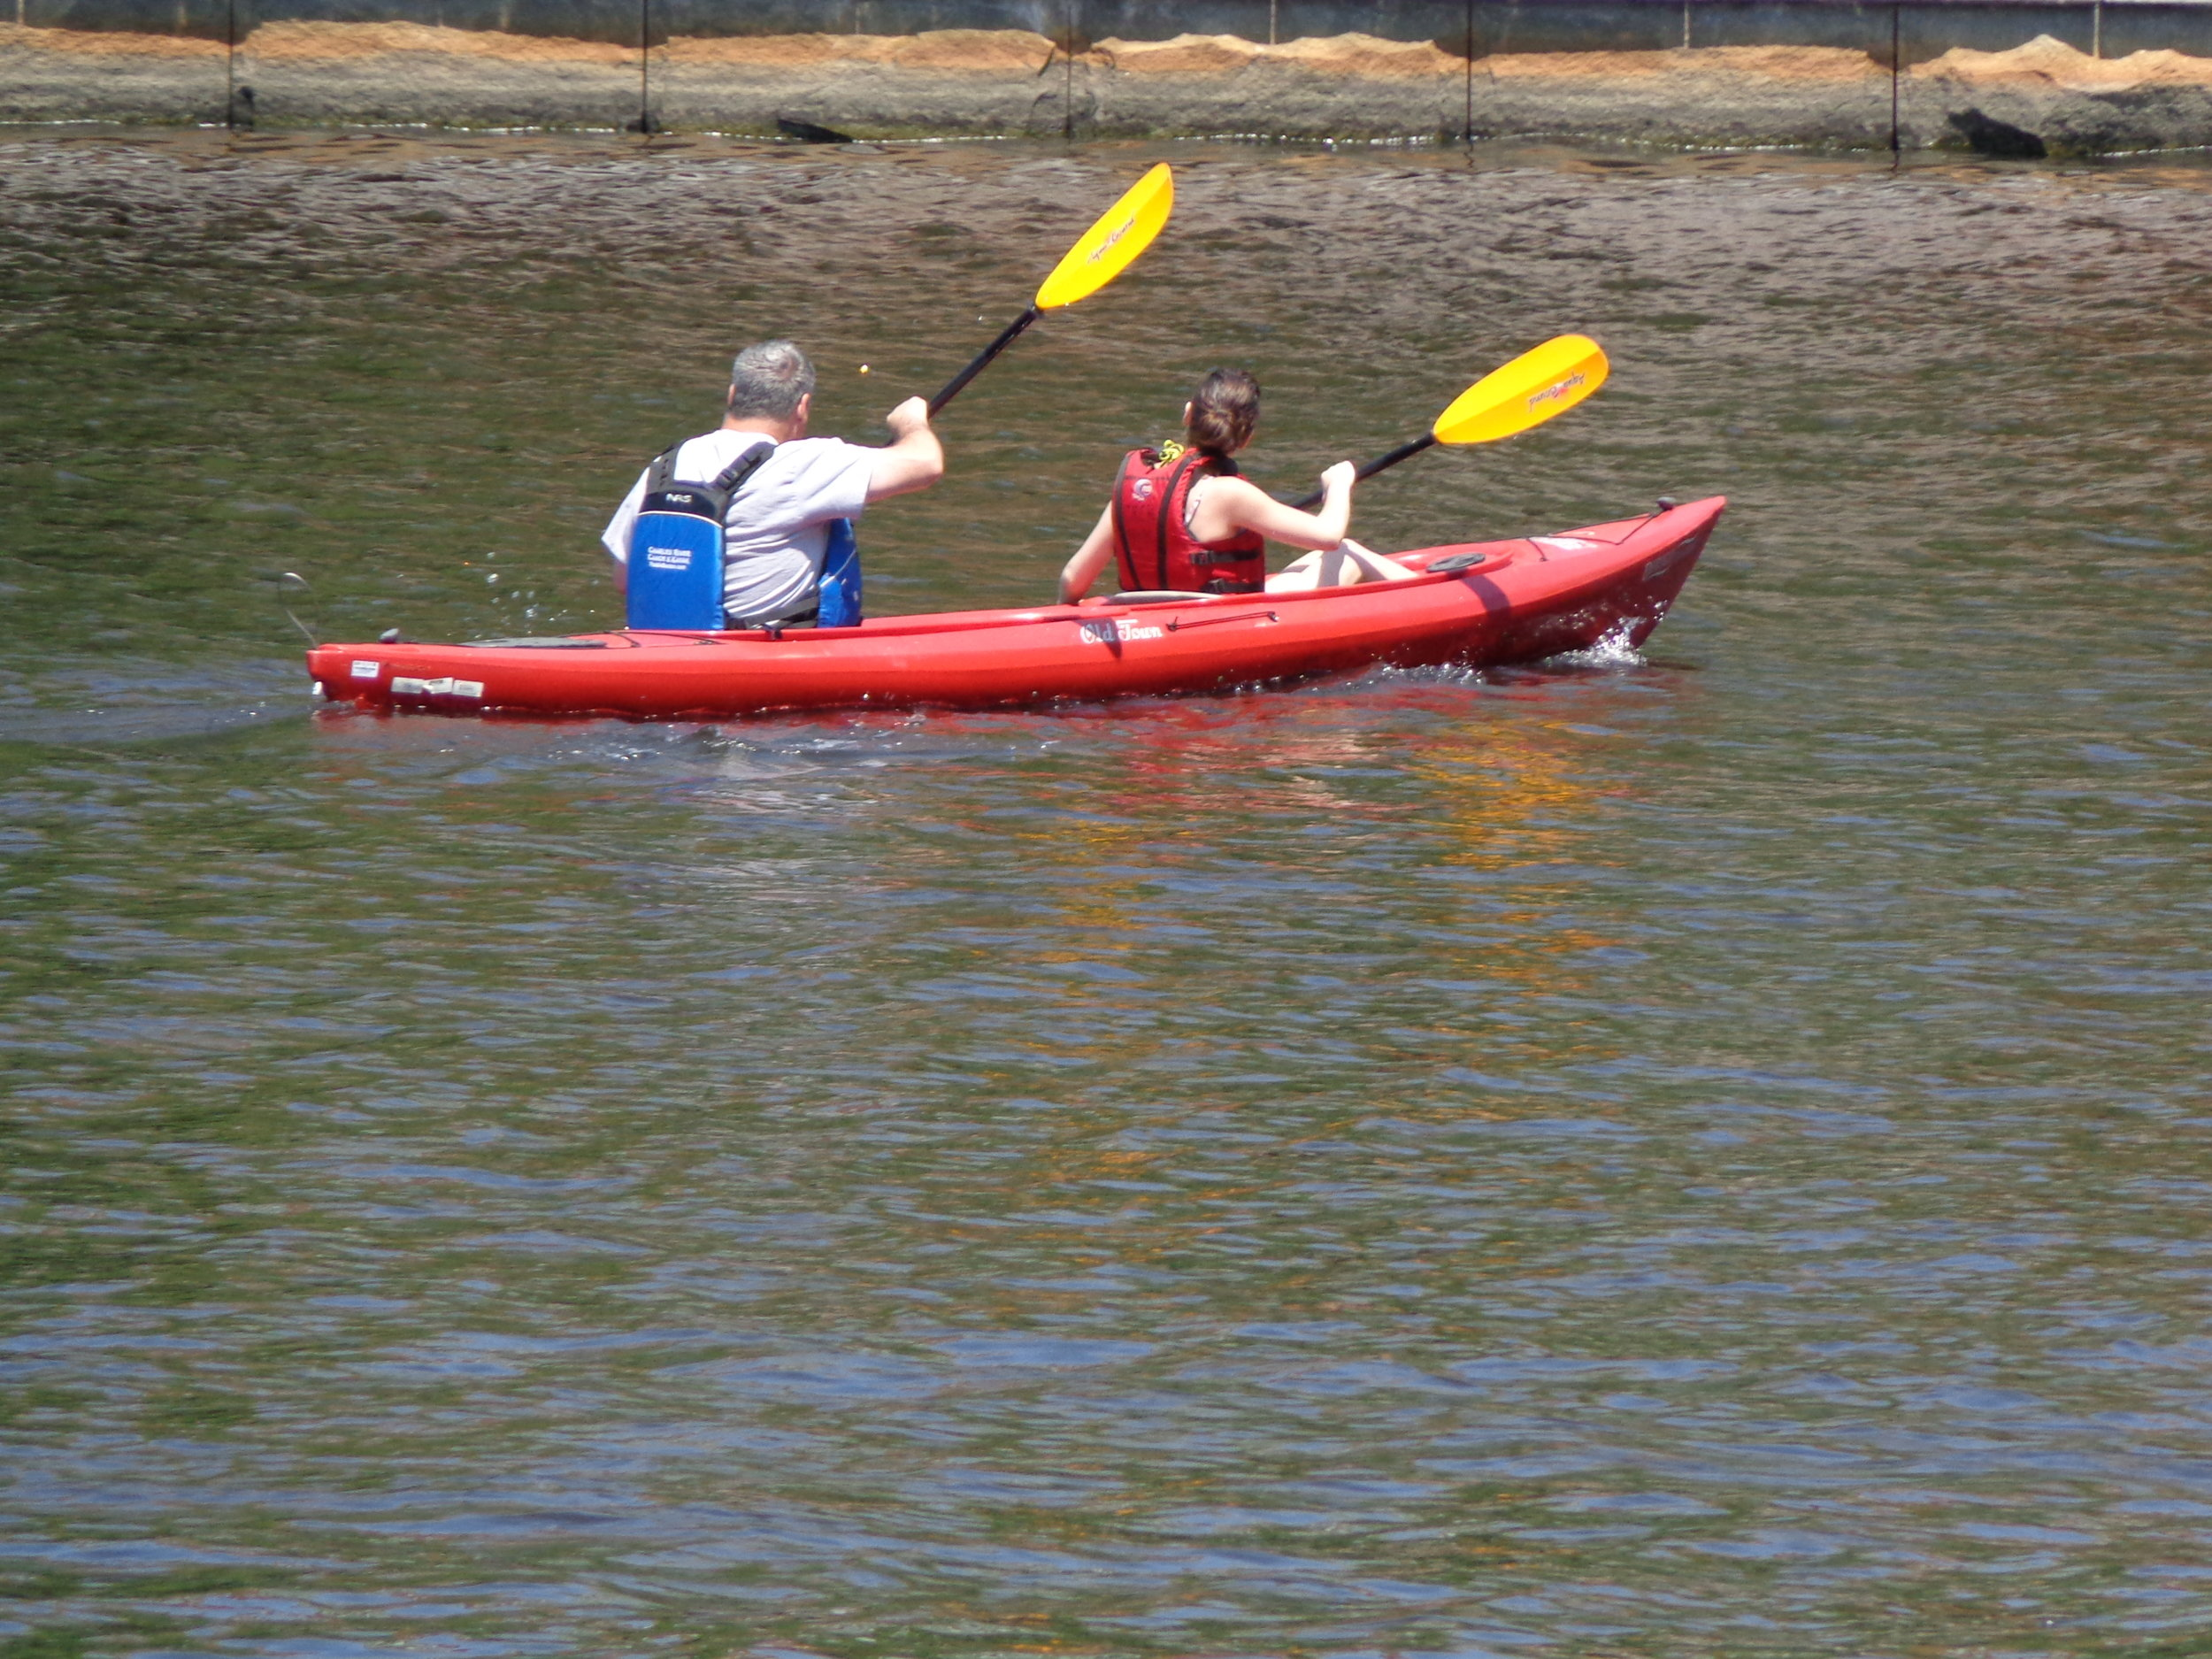 Fresh Water Lake - Paddle away with a friend or just drift in solitude